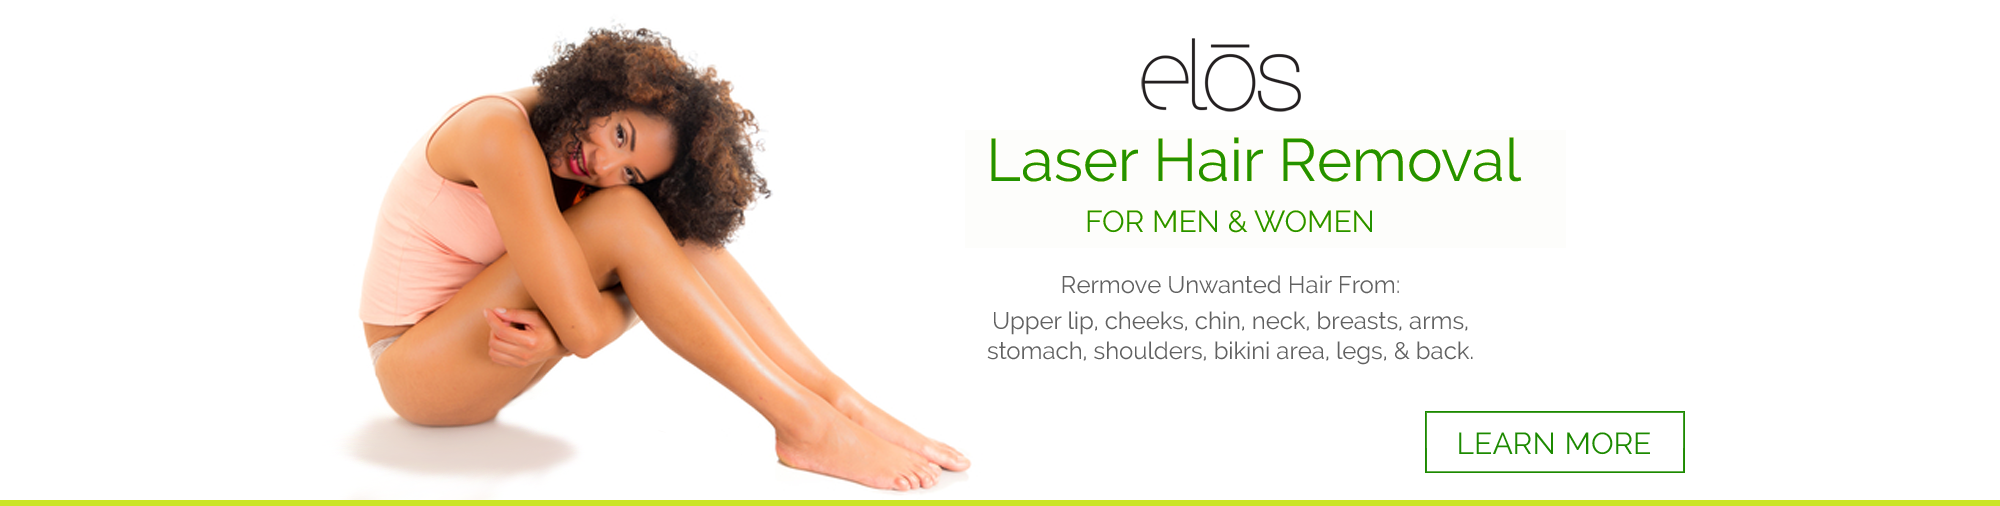 Clinton Township Laser Hair Removal